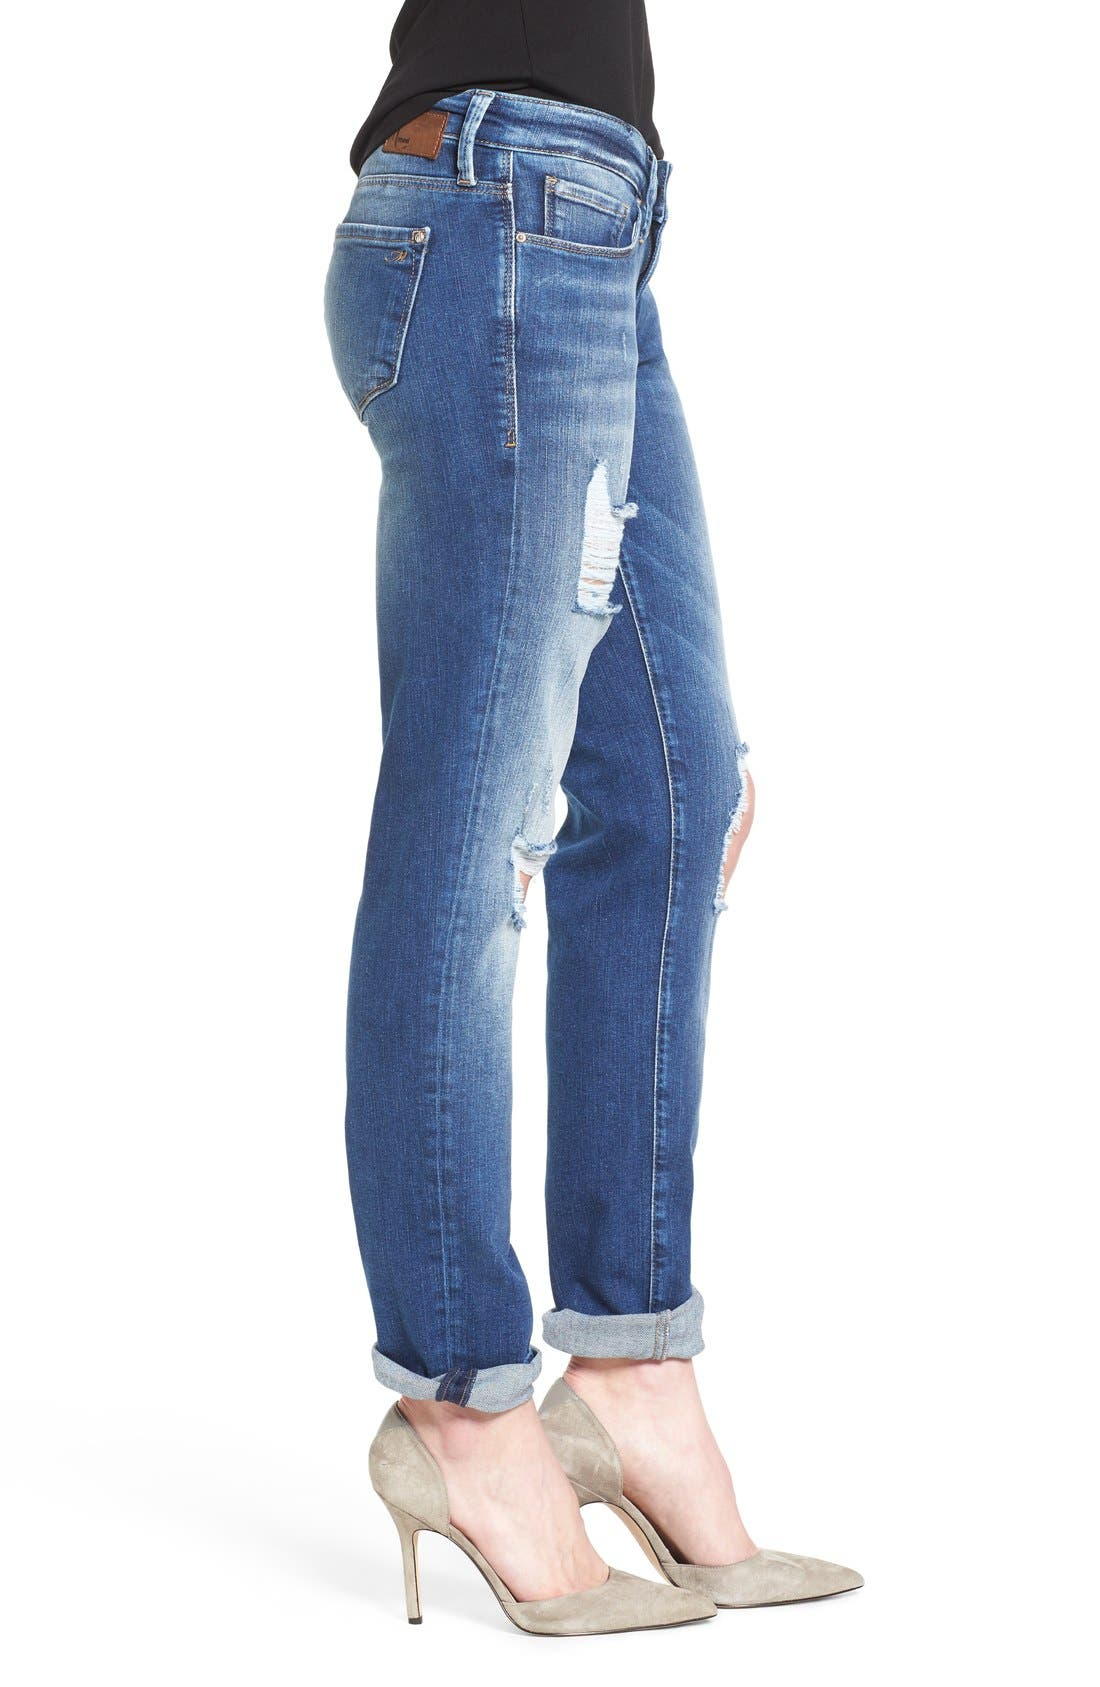 Alternate Image 3  - Mavi Jeans 'Emma' Ripped Knee Boyfriend Slim Jeans (Vintage)